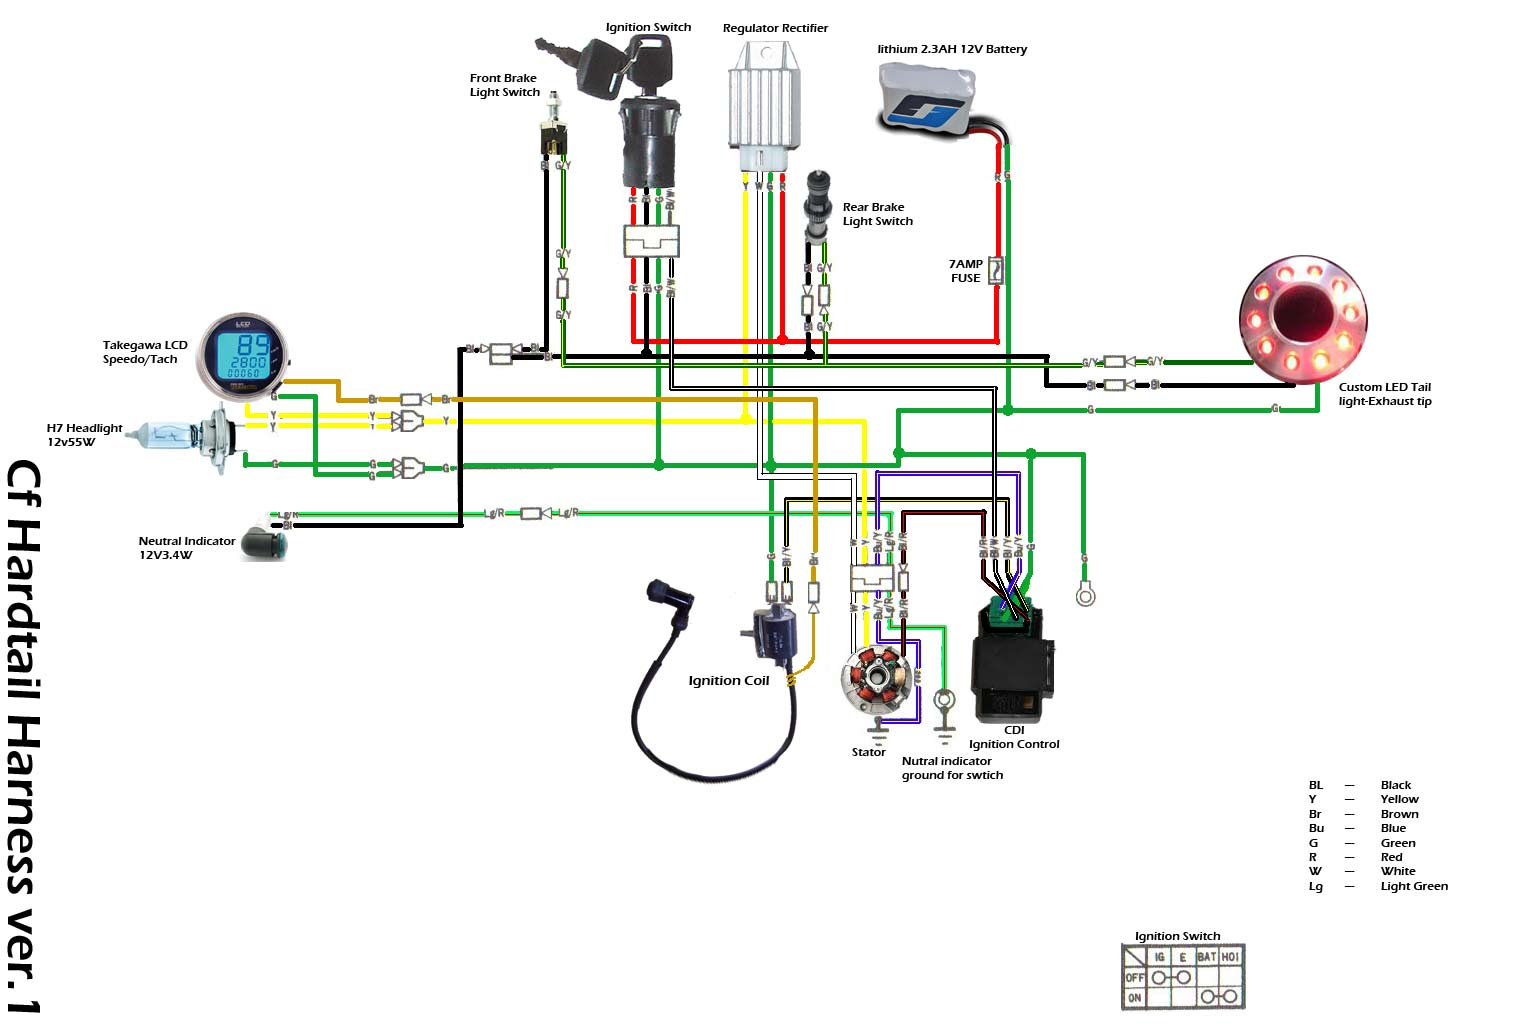 Magnificent Lifan 125cc Wiring Diagram Gallery - Electrical Circuit ...